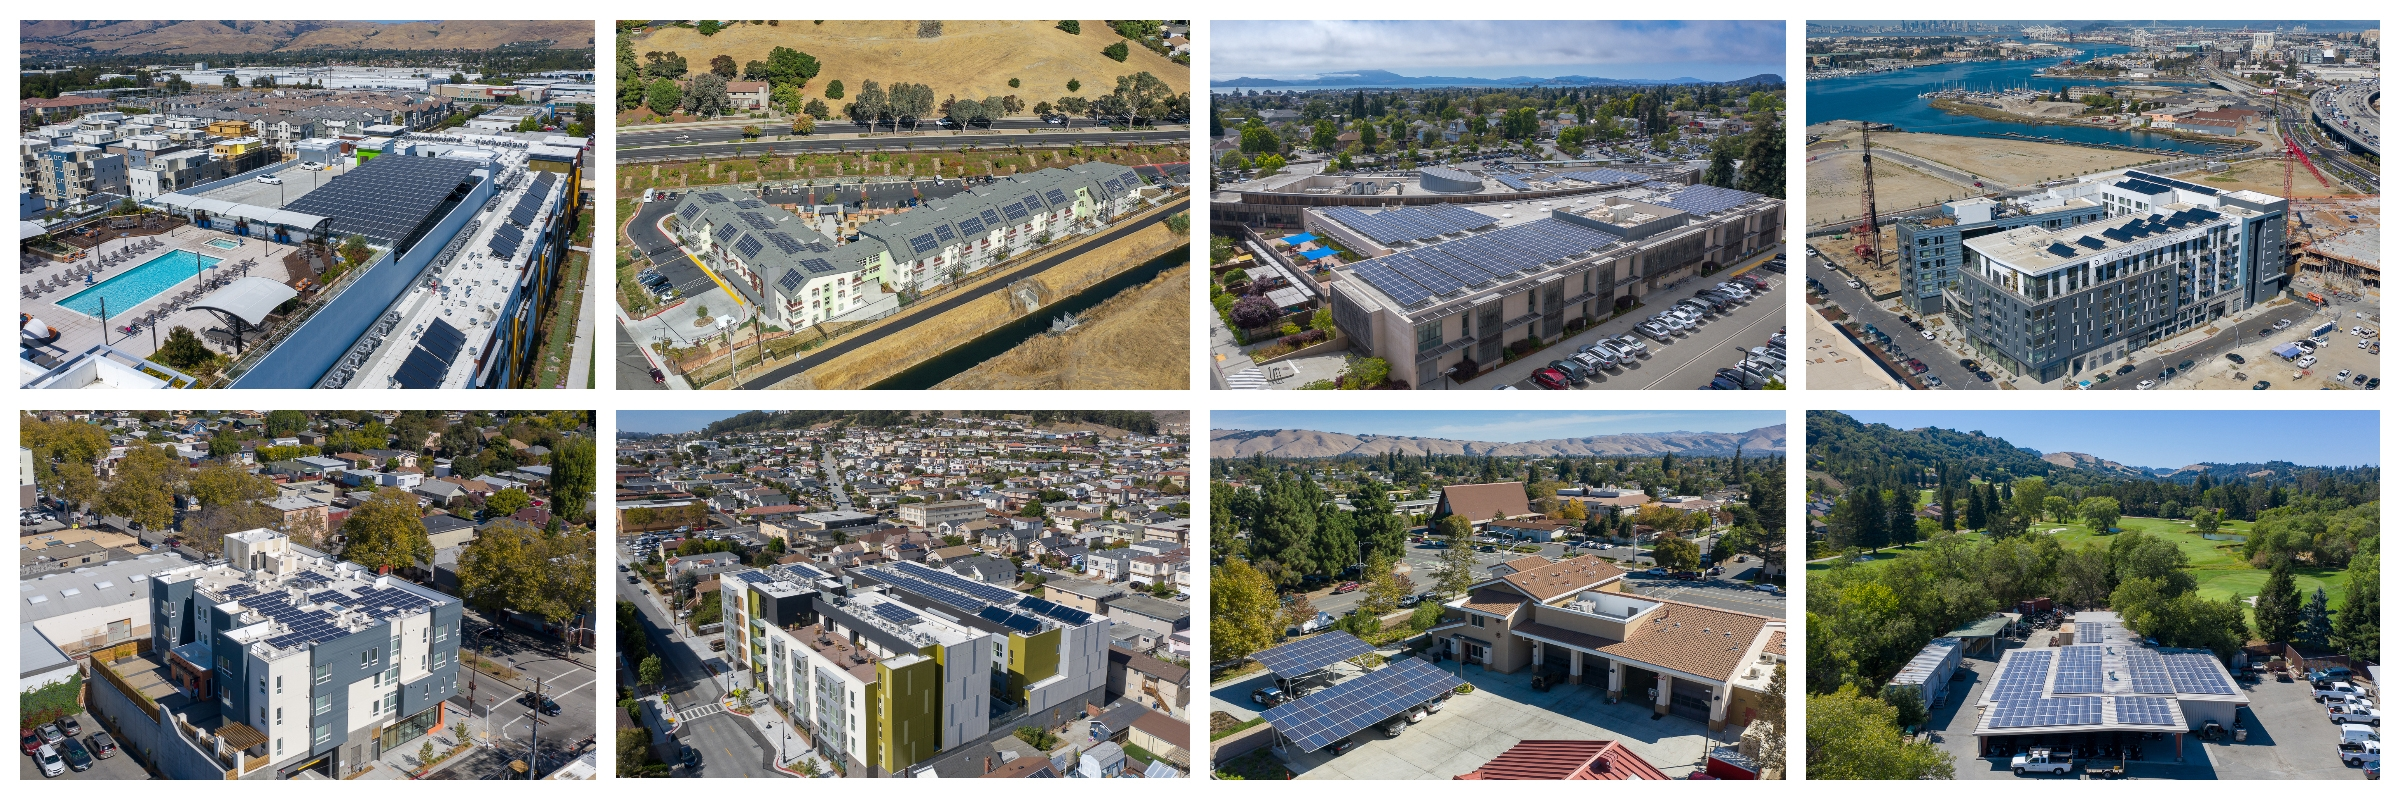 Solar Roofs Drone Gallery